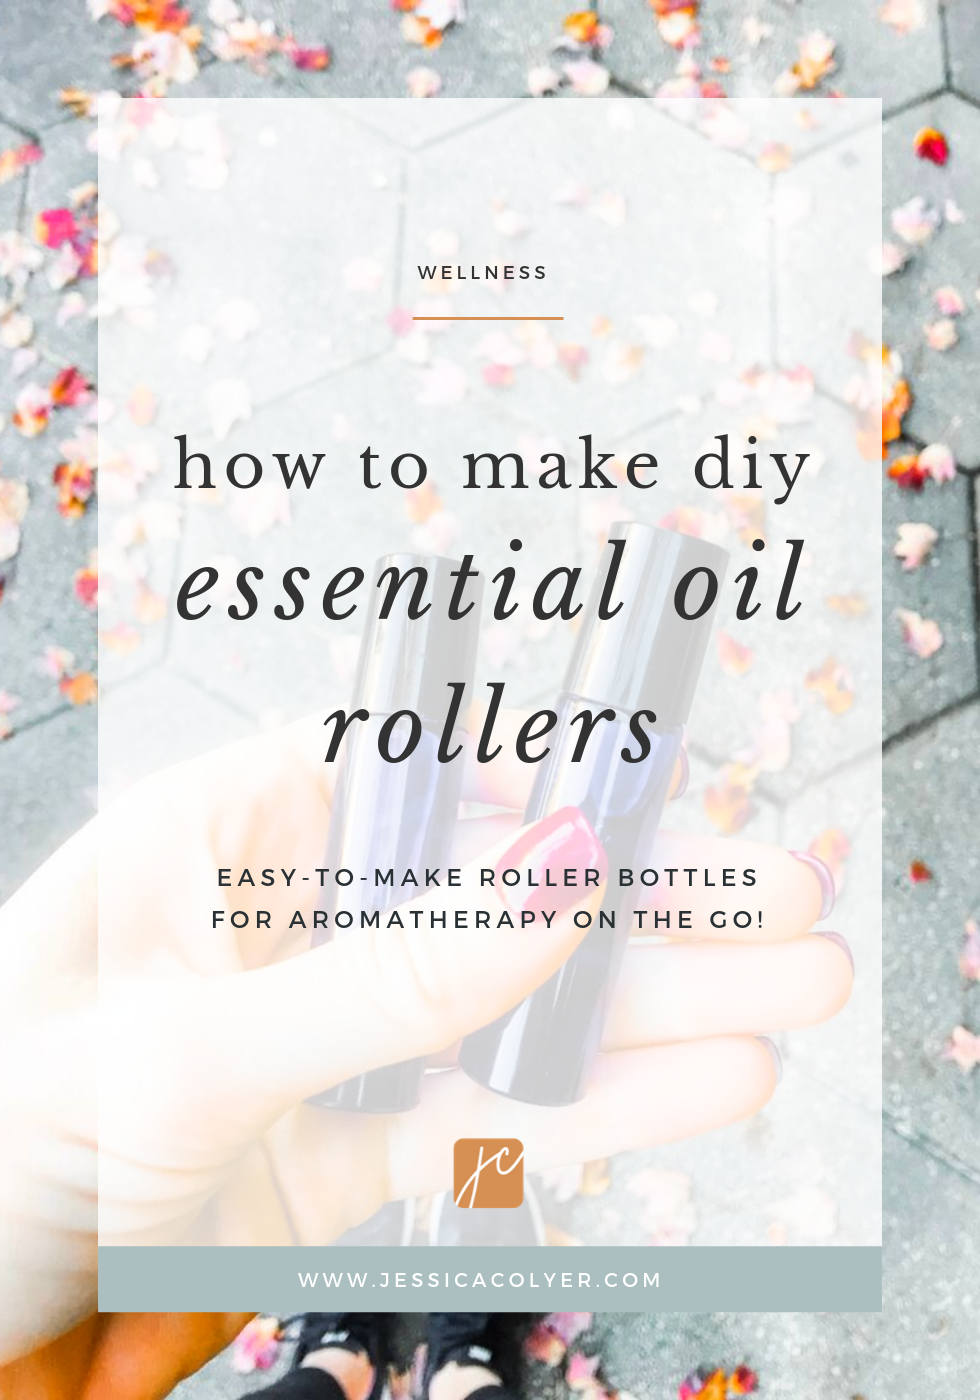 How to Make DIY Essential Oil Rollers